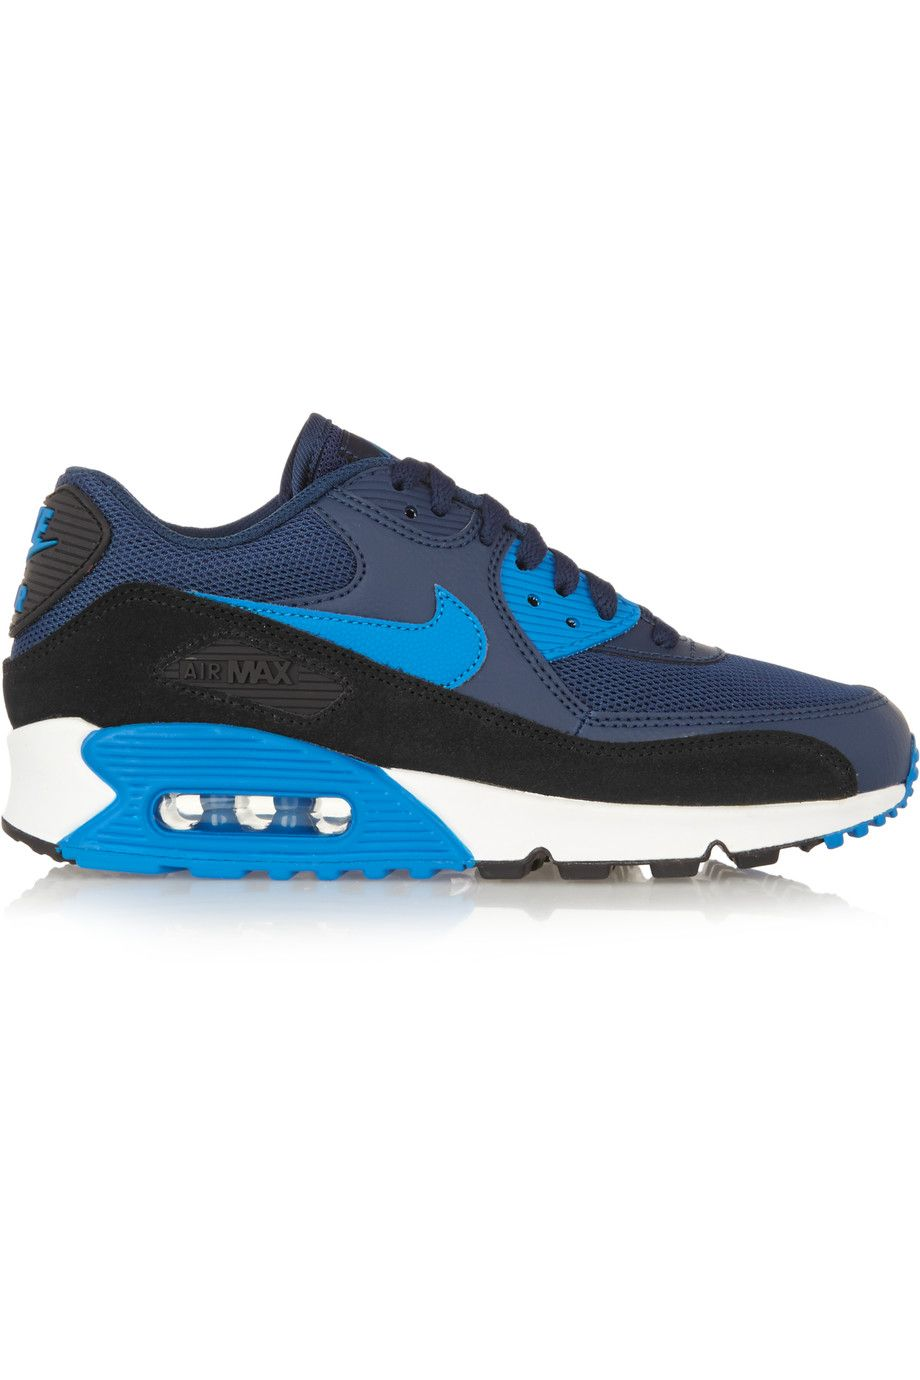 nike air max 90 essential leather mesh rubber and suede sneakers. nike shoes sneakers